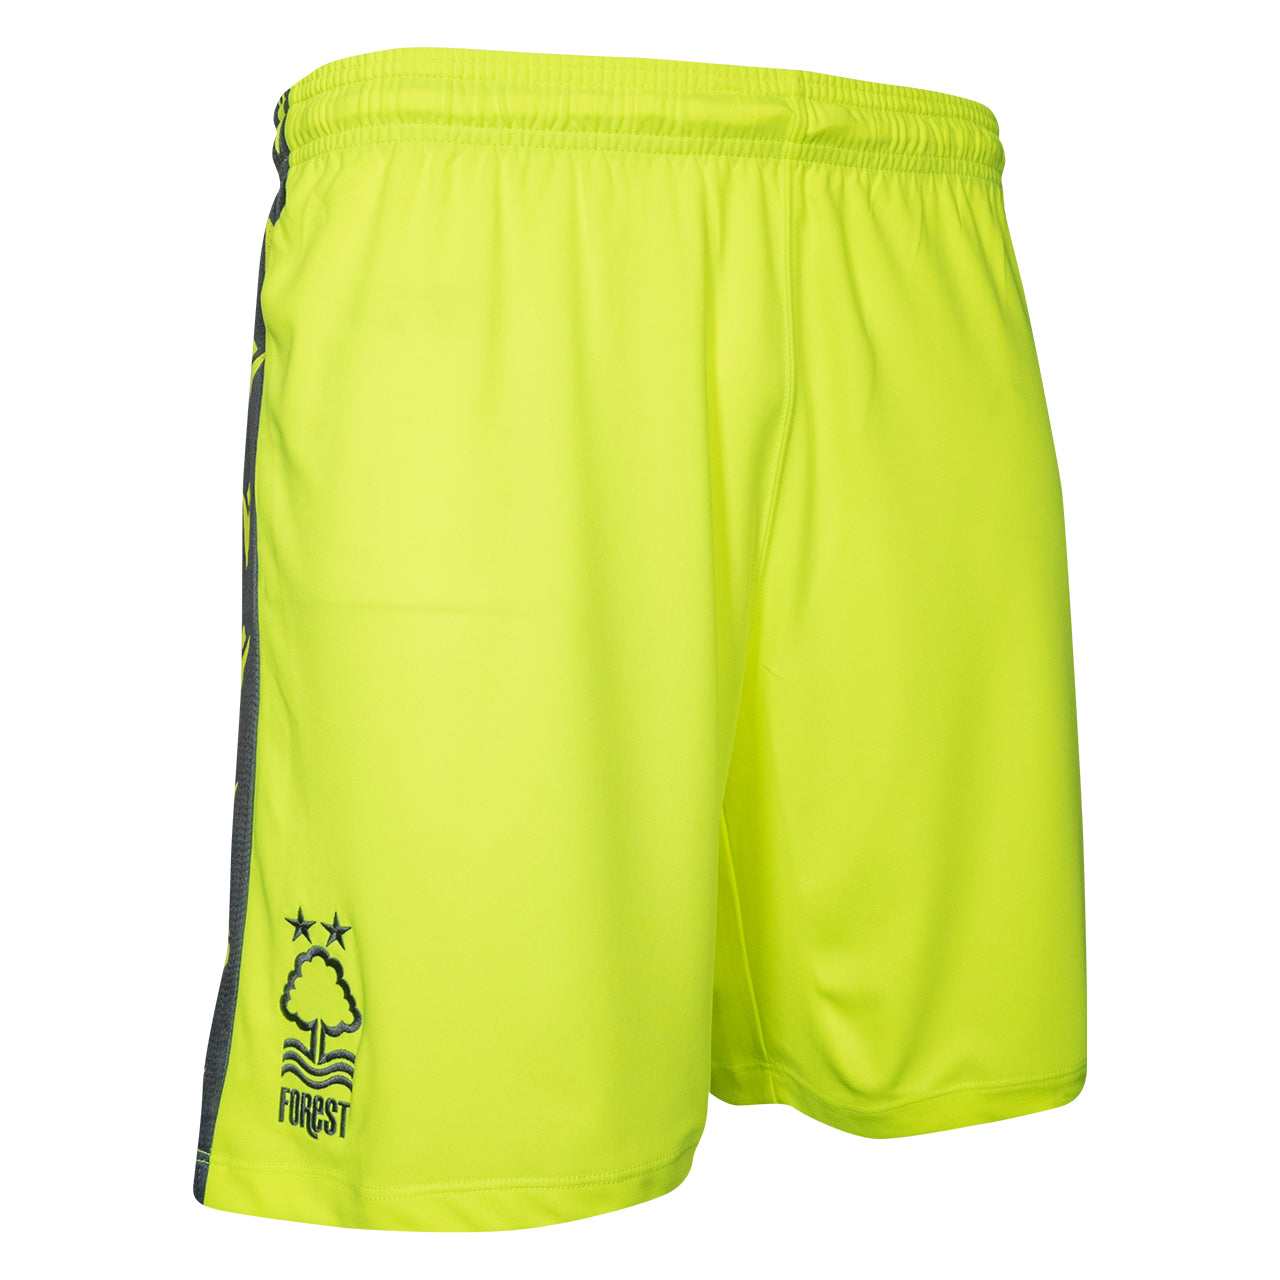 NFFC Junior Yellow Goalkeeper Shorts 2020/21